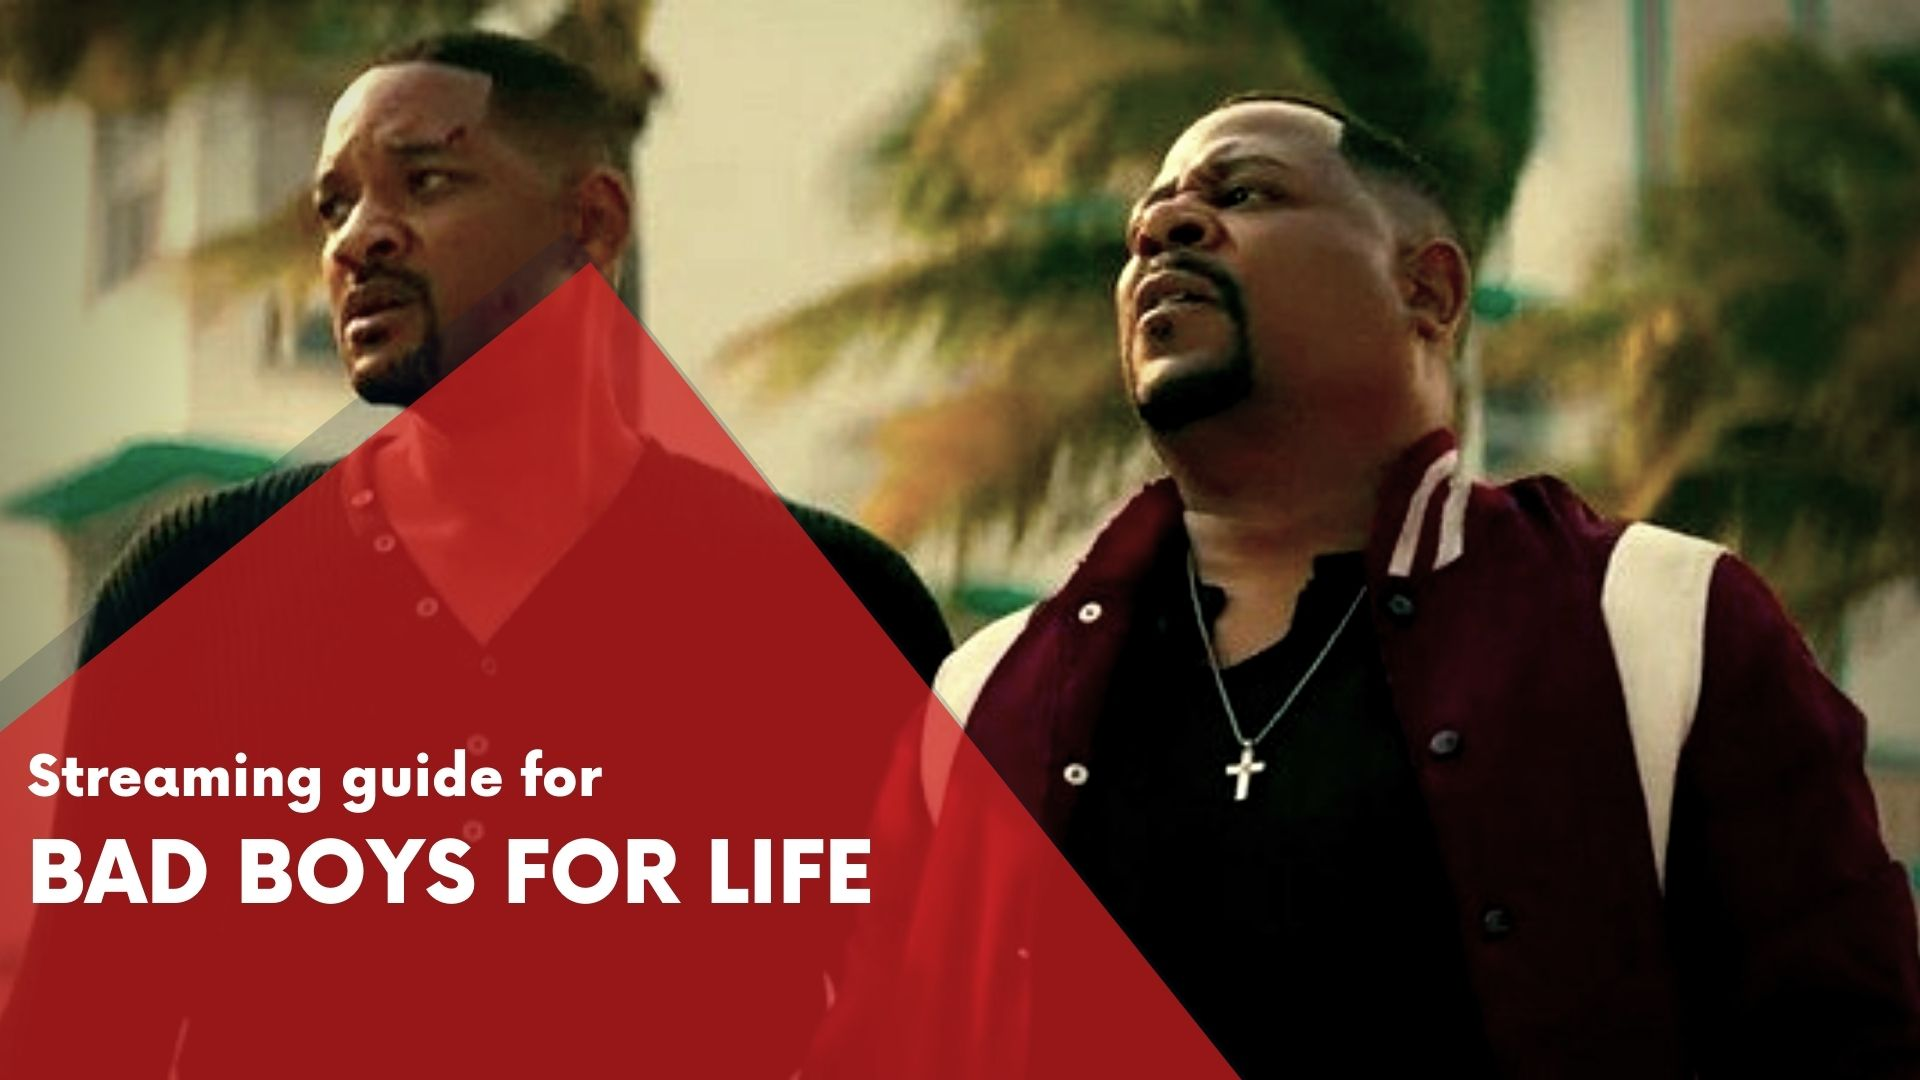 Bad Boys For Life Streaming Guide